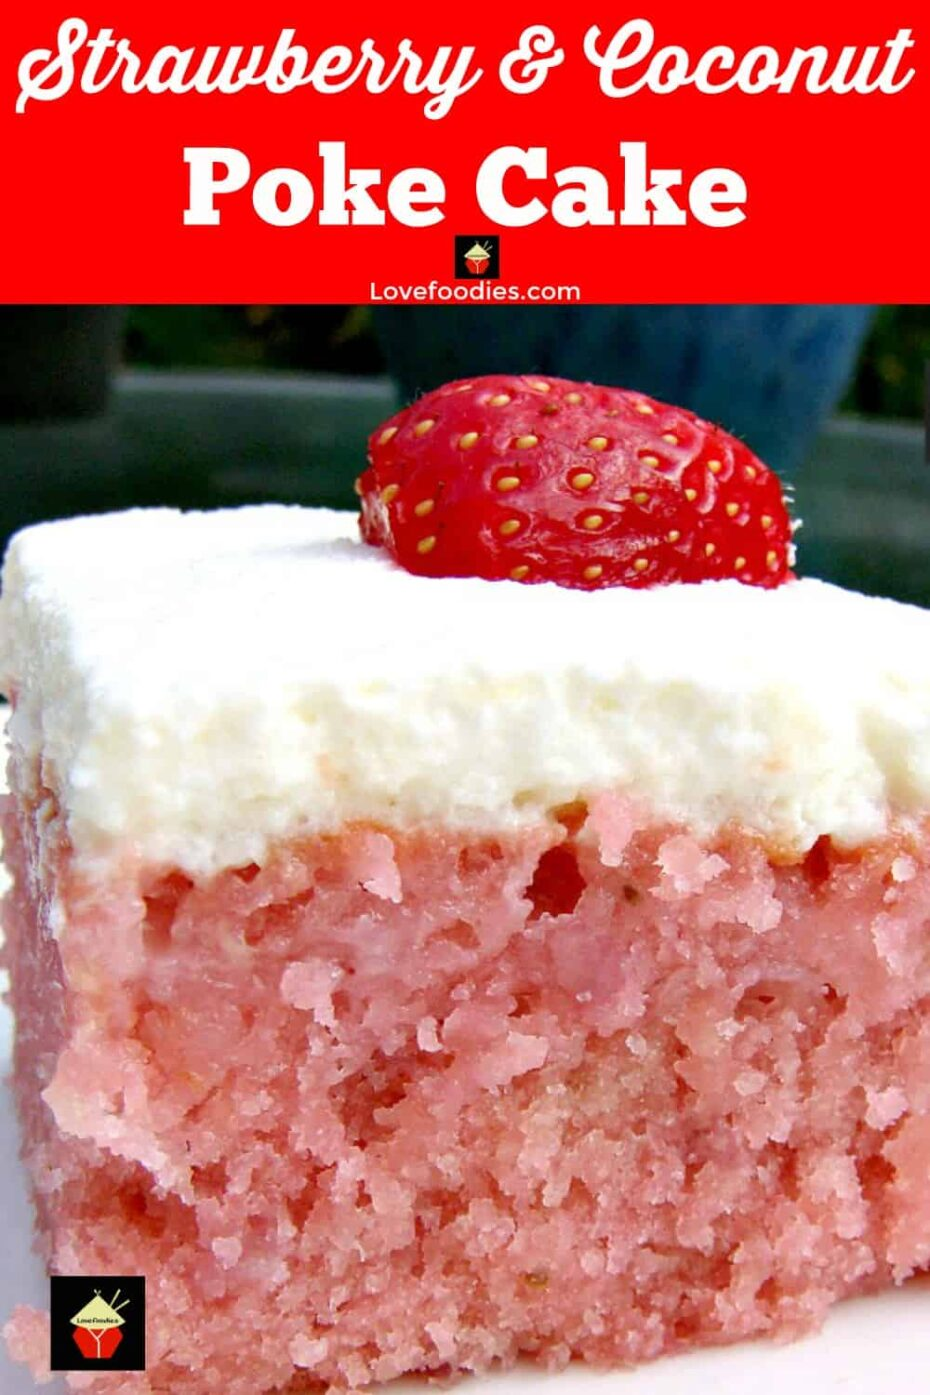 Strawberry and Coconut Cake (Poke Cake) with Fresh Whipped Cream. Easy made from scratch recipe. Yummy!